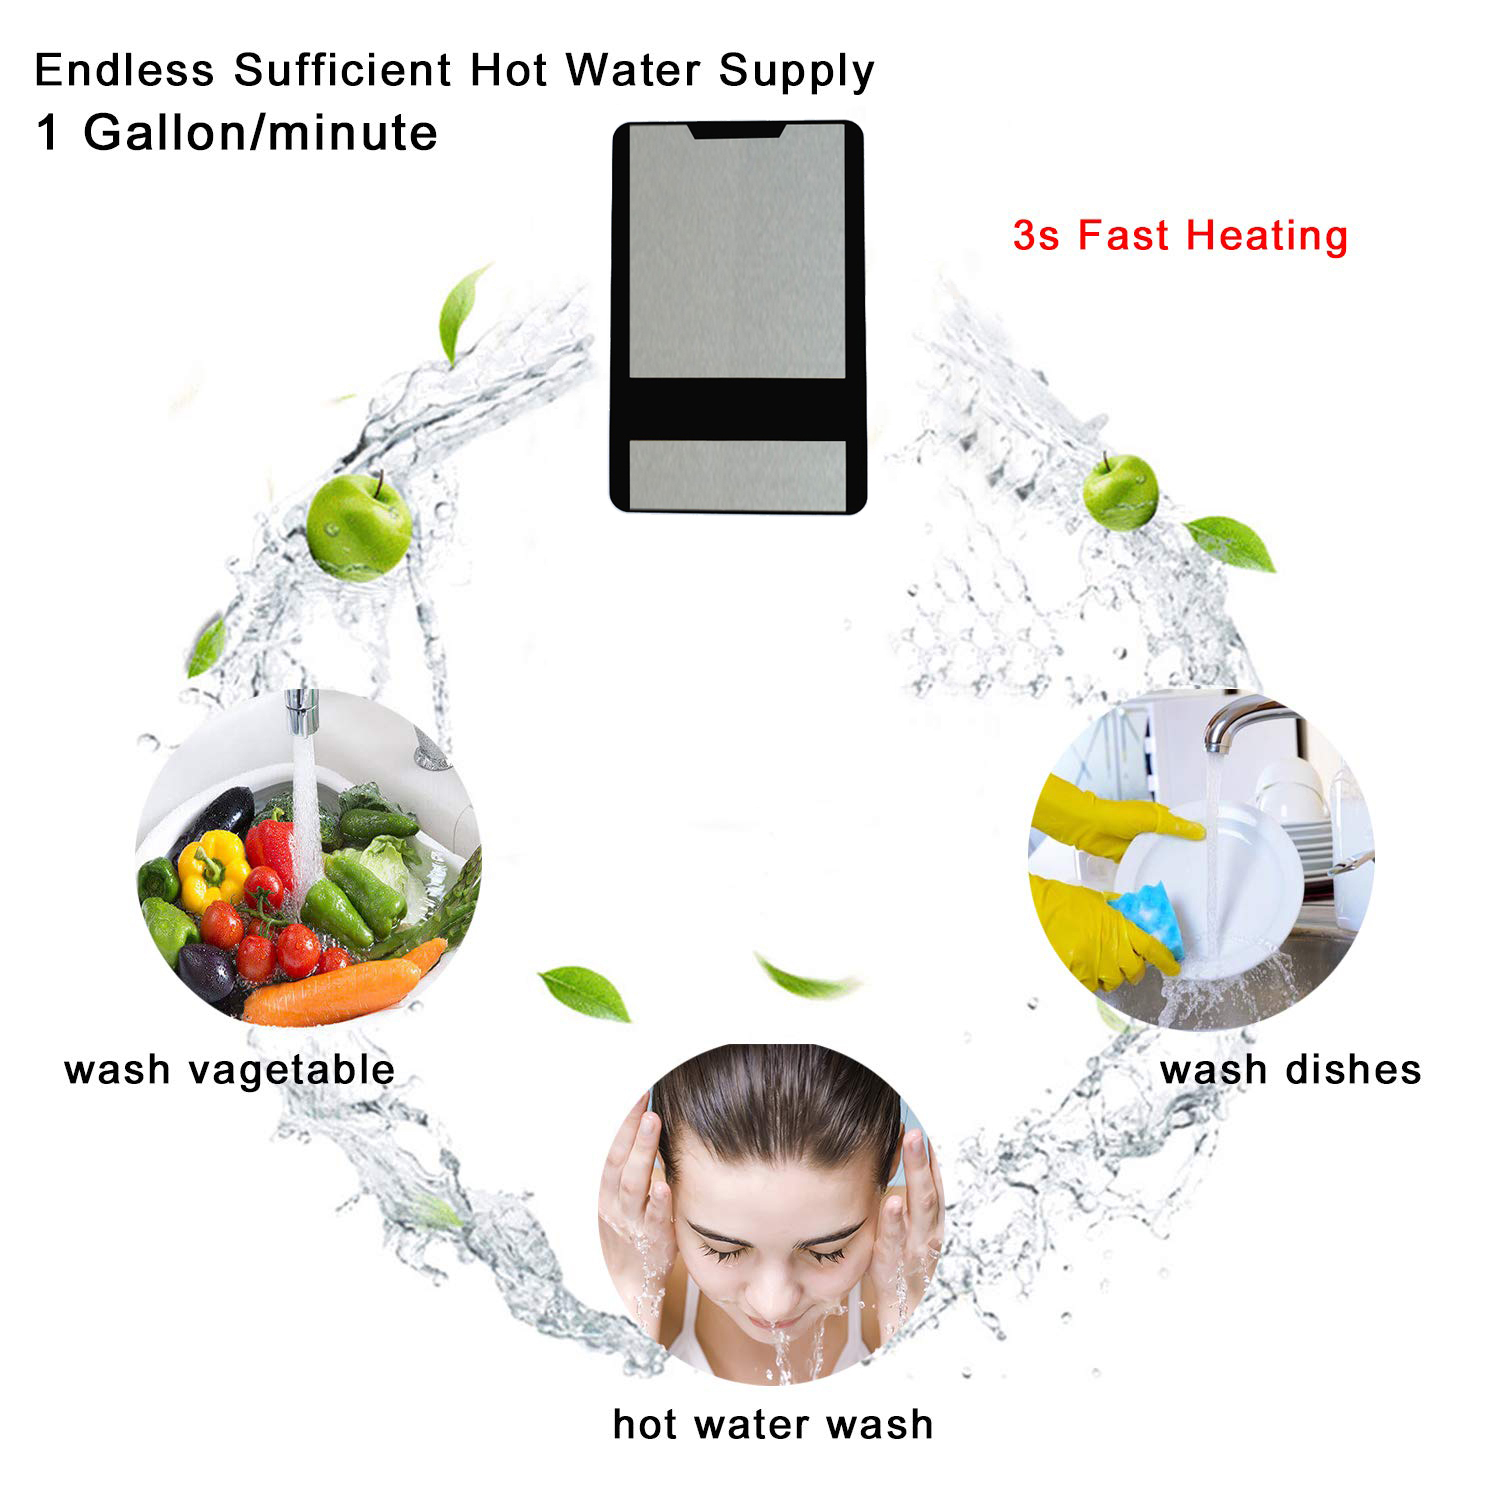 V6 6.5-8.5kw instant tankless water heater